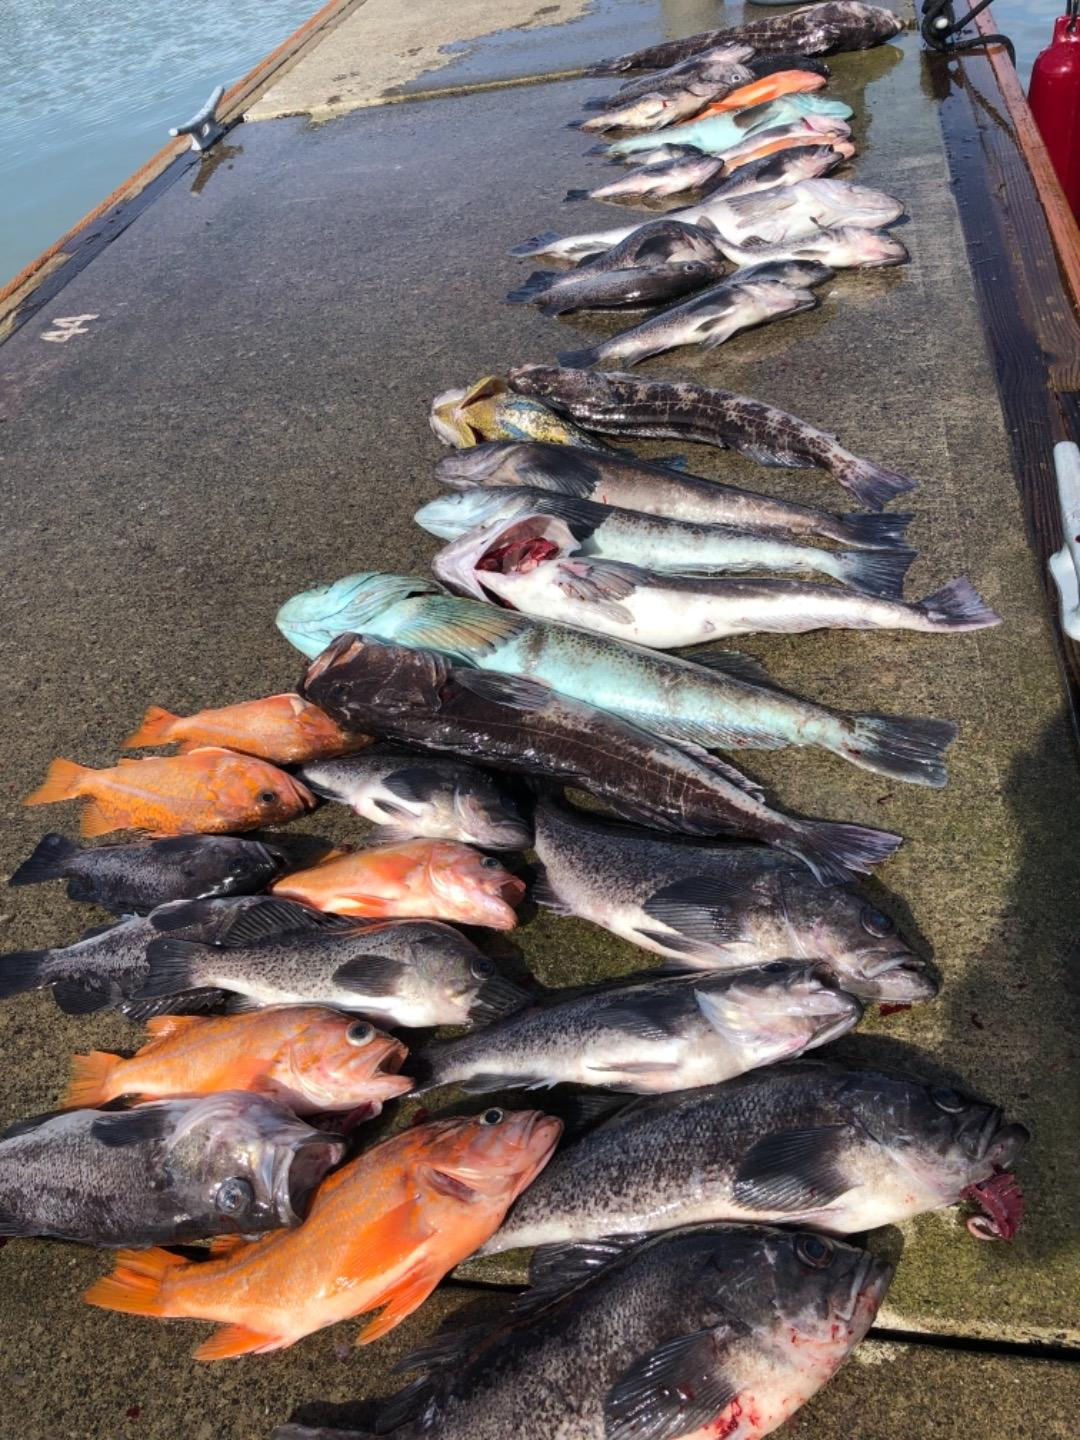 Lingcod fishing takes off